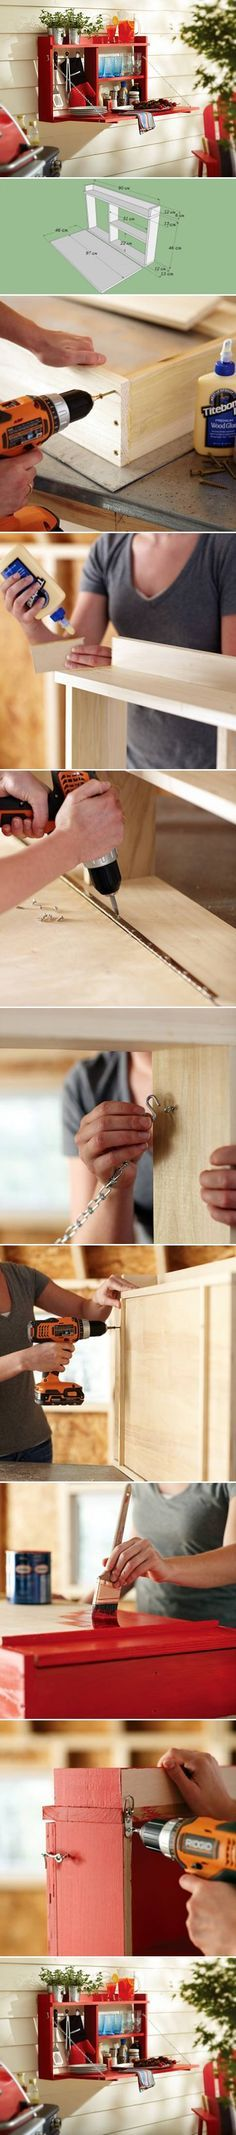 """Read More """"DIY: Fold- Out Plywood Work Bench"""" Read More """"A great idea for an outdoor bar or garden table #inspiredlivingomaha"""", """"DIY Murphy Table for outdoor cooking"""", """"Cool outside bar idea"""", """"murphy table"""", """"outdoor bar."""" Read More """"DIY Cordless Drill Storage And Charging Station diyprojects.ideas… This wall-mounted cordless drill storage will help keep the entire …"""